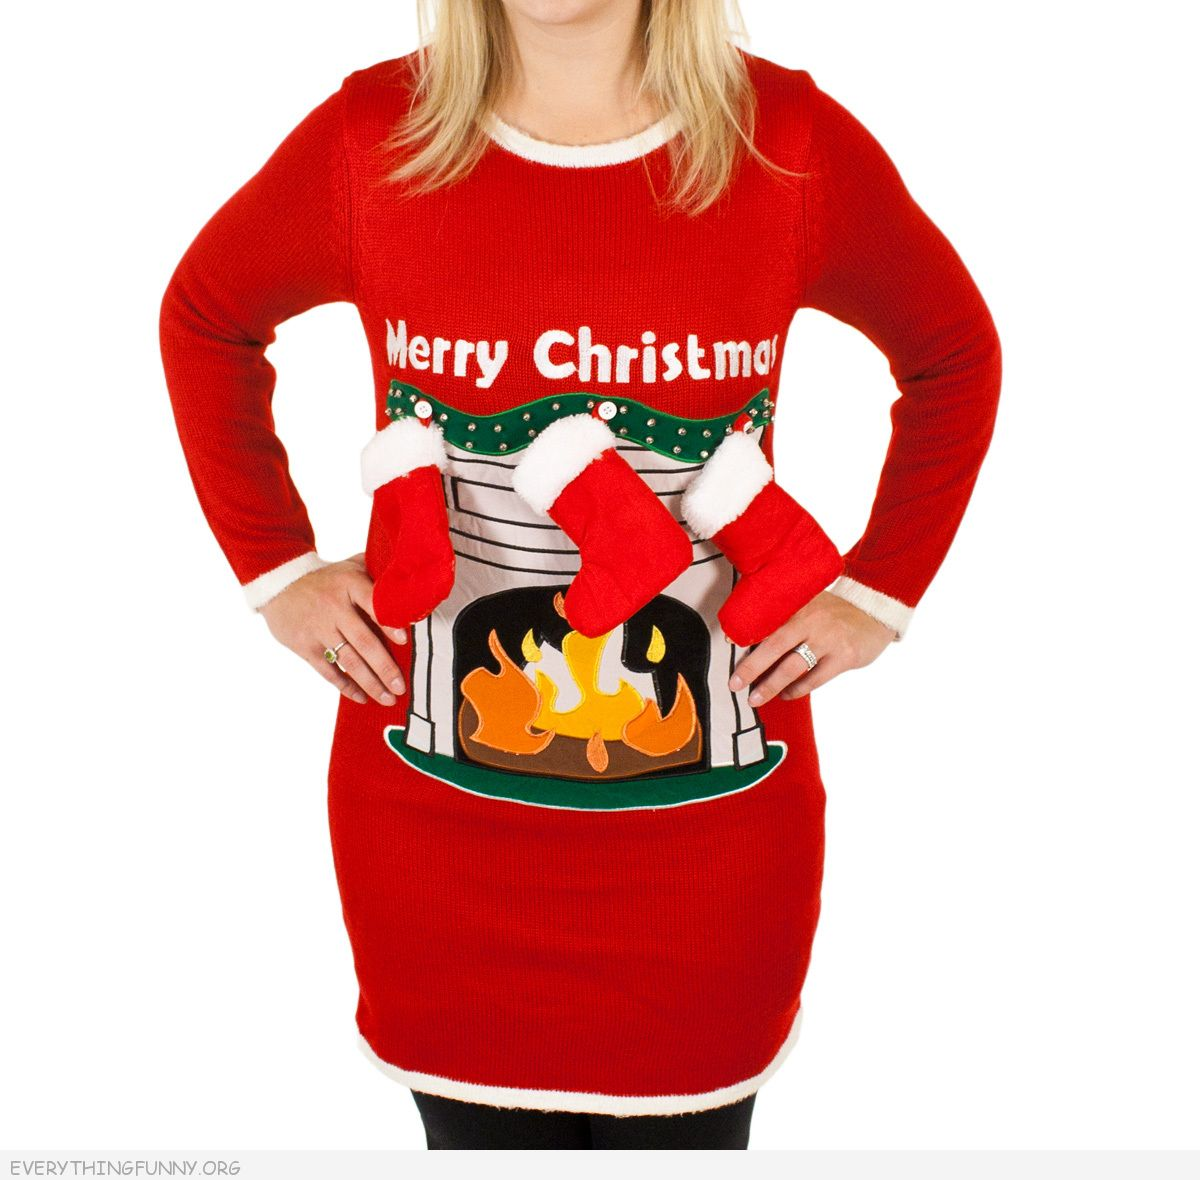 funny gifts ugly christmas sweater womens ladies girls fireplace 3d stockings